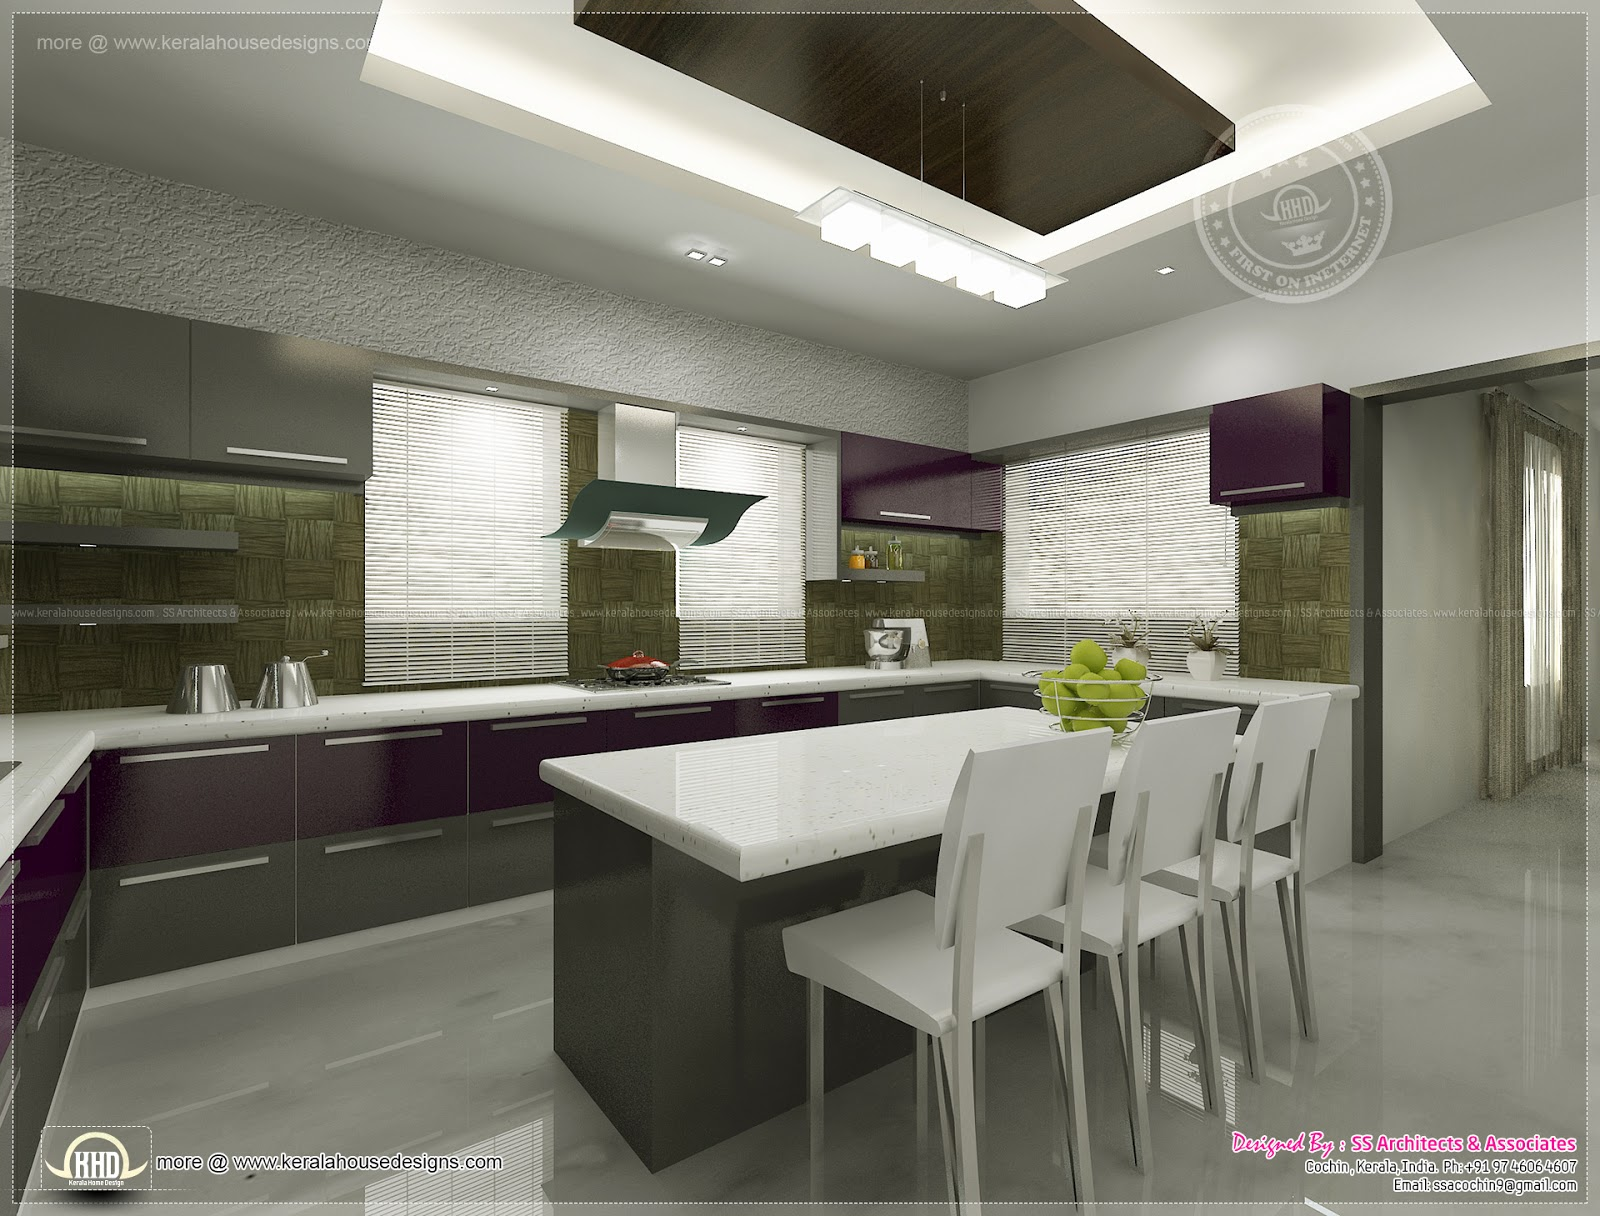 Design House Interiors Kitchen Interior Views By Ss Architects Cochin Kerala